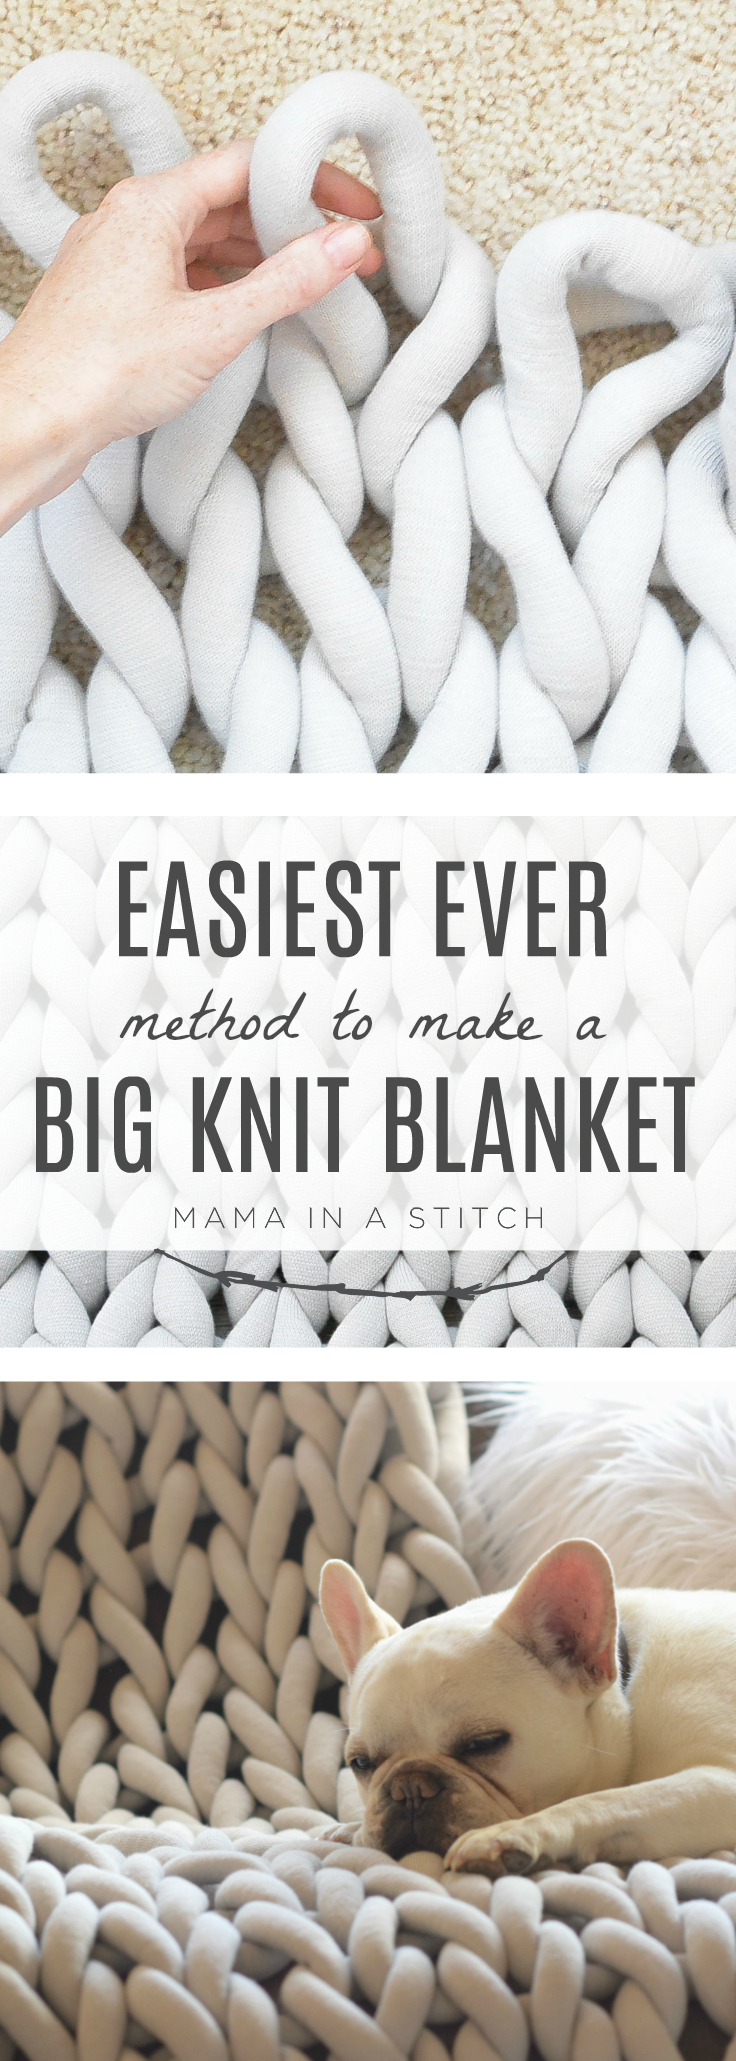 Such an easy way to make a big knit blanket without having to arm knit or needle knit! Perfect for beginner knitters or those of us who have never knit before.  Tutorial and pattern includes a video to walk you through it! #extremeknitting #bigknits #bigknitblanket